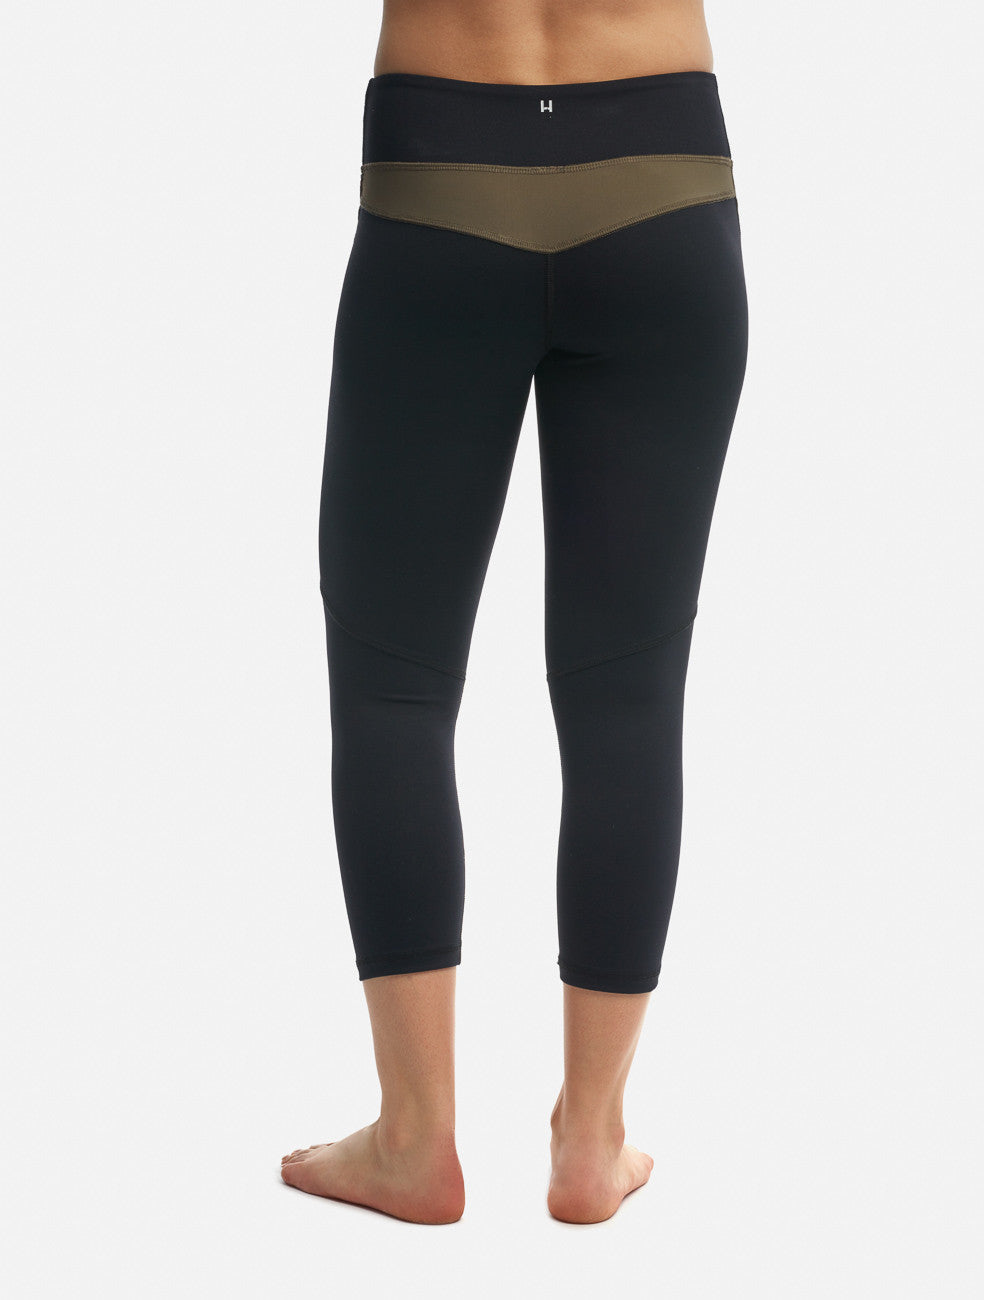 Moss/Black Two-Tone Crop Legging - Haven Collective